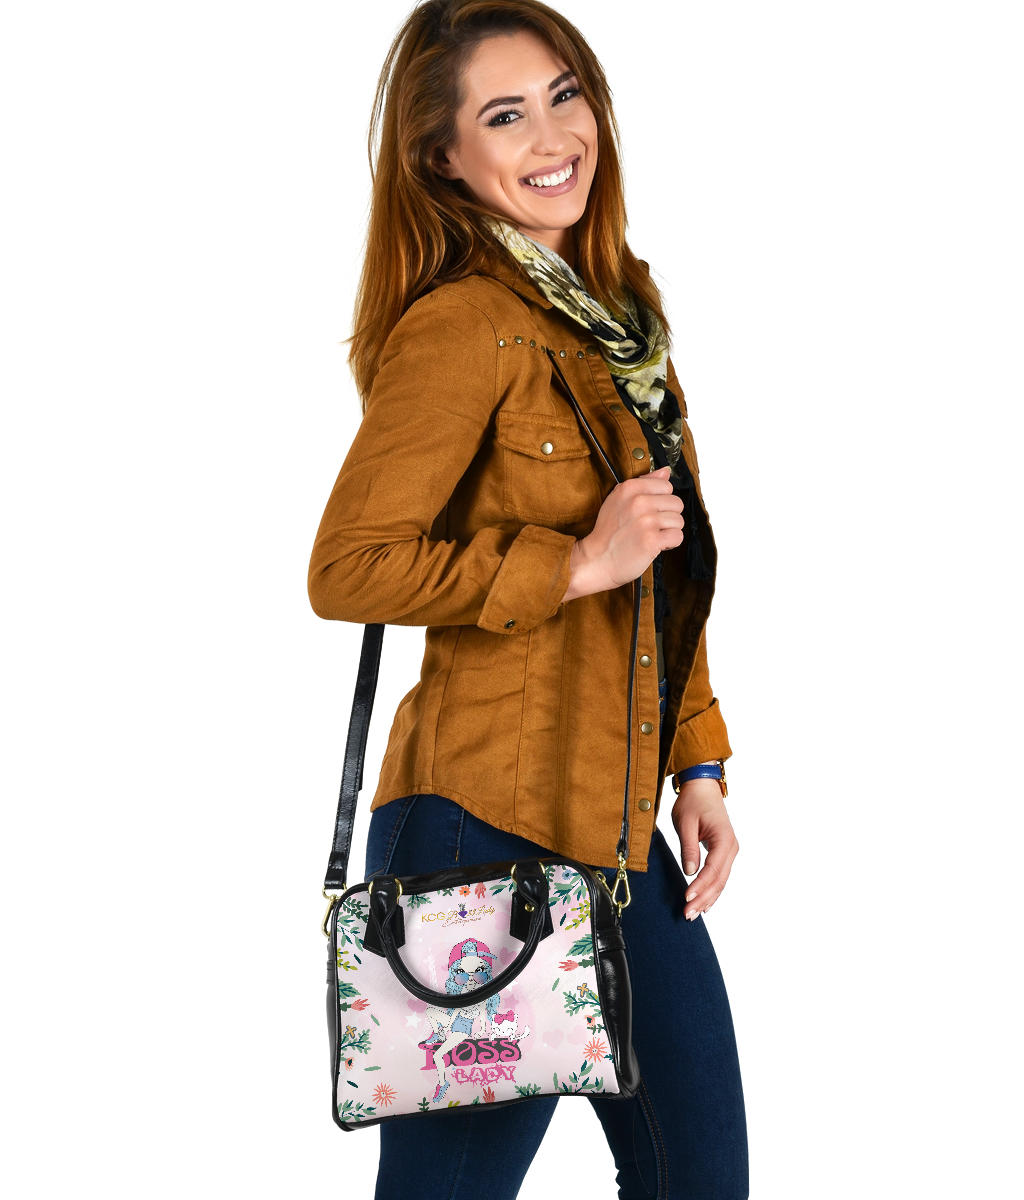 Boss Lady With A Lovely Cat Shoulder Handbag